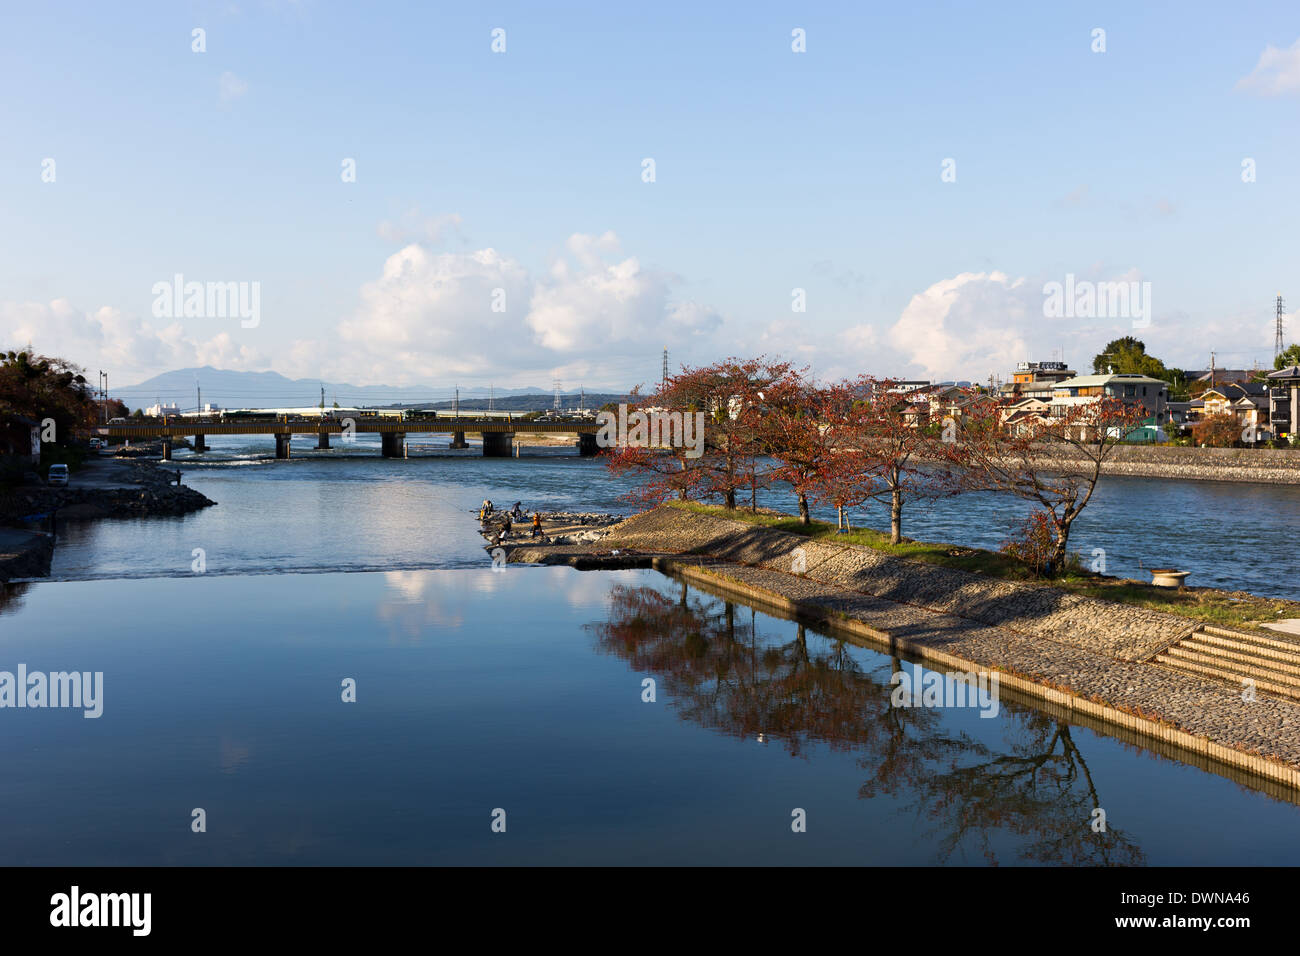 Kyoto, Osaka, Japan River - Stock Image